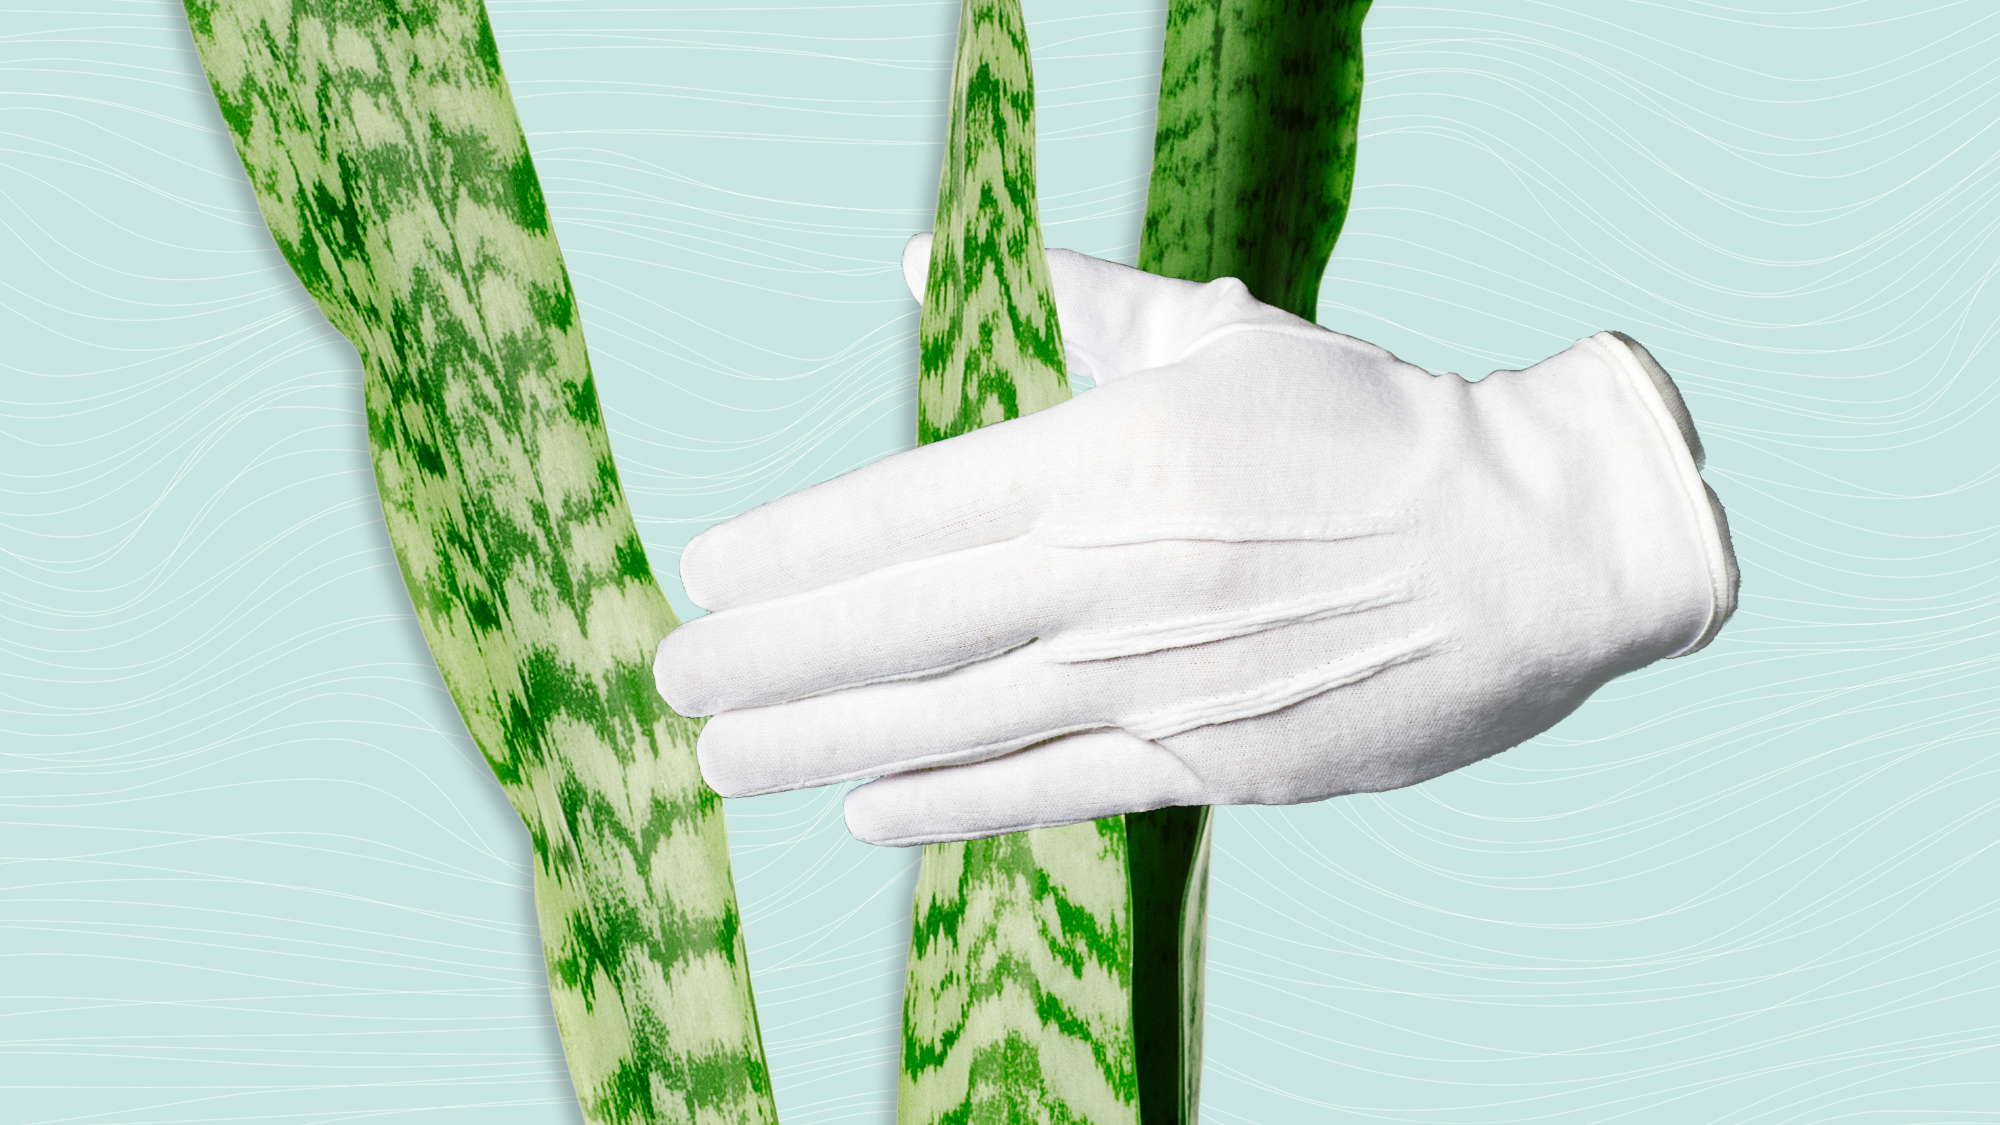 A white cotton glove hand holding and wiping down the leaves of a plant